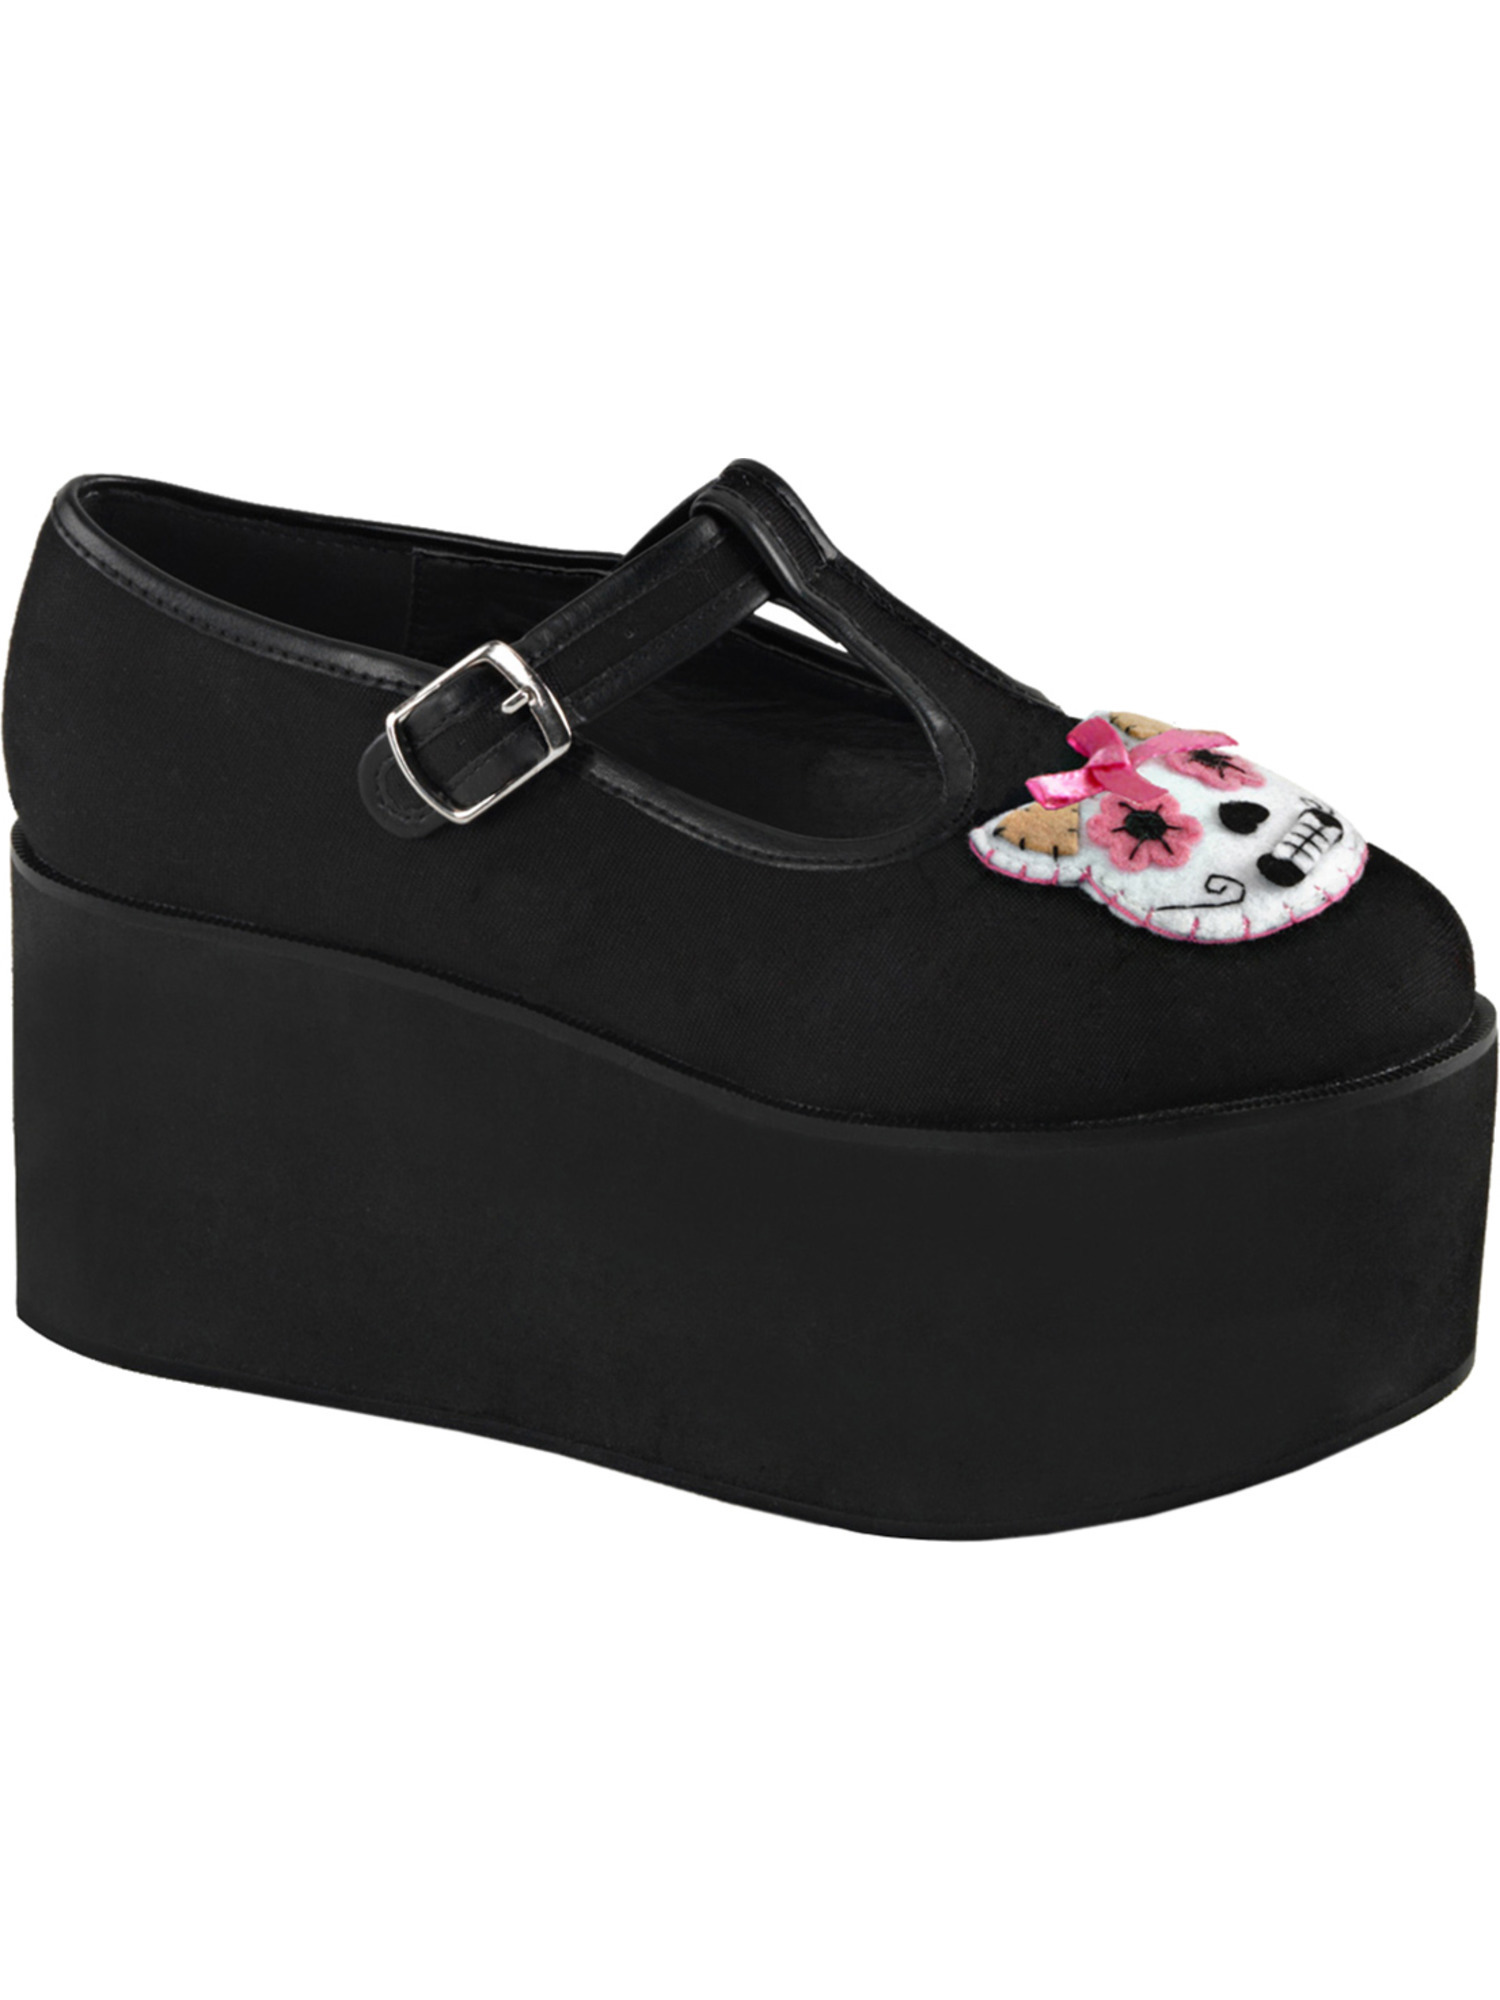 Canvas Shoes Womens Black T Strap Shoes Kitty Cat Skull 3 1/4 Inch Platform